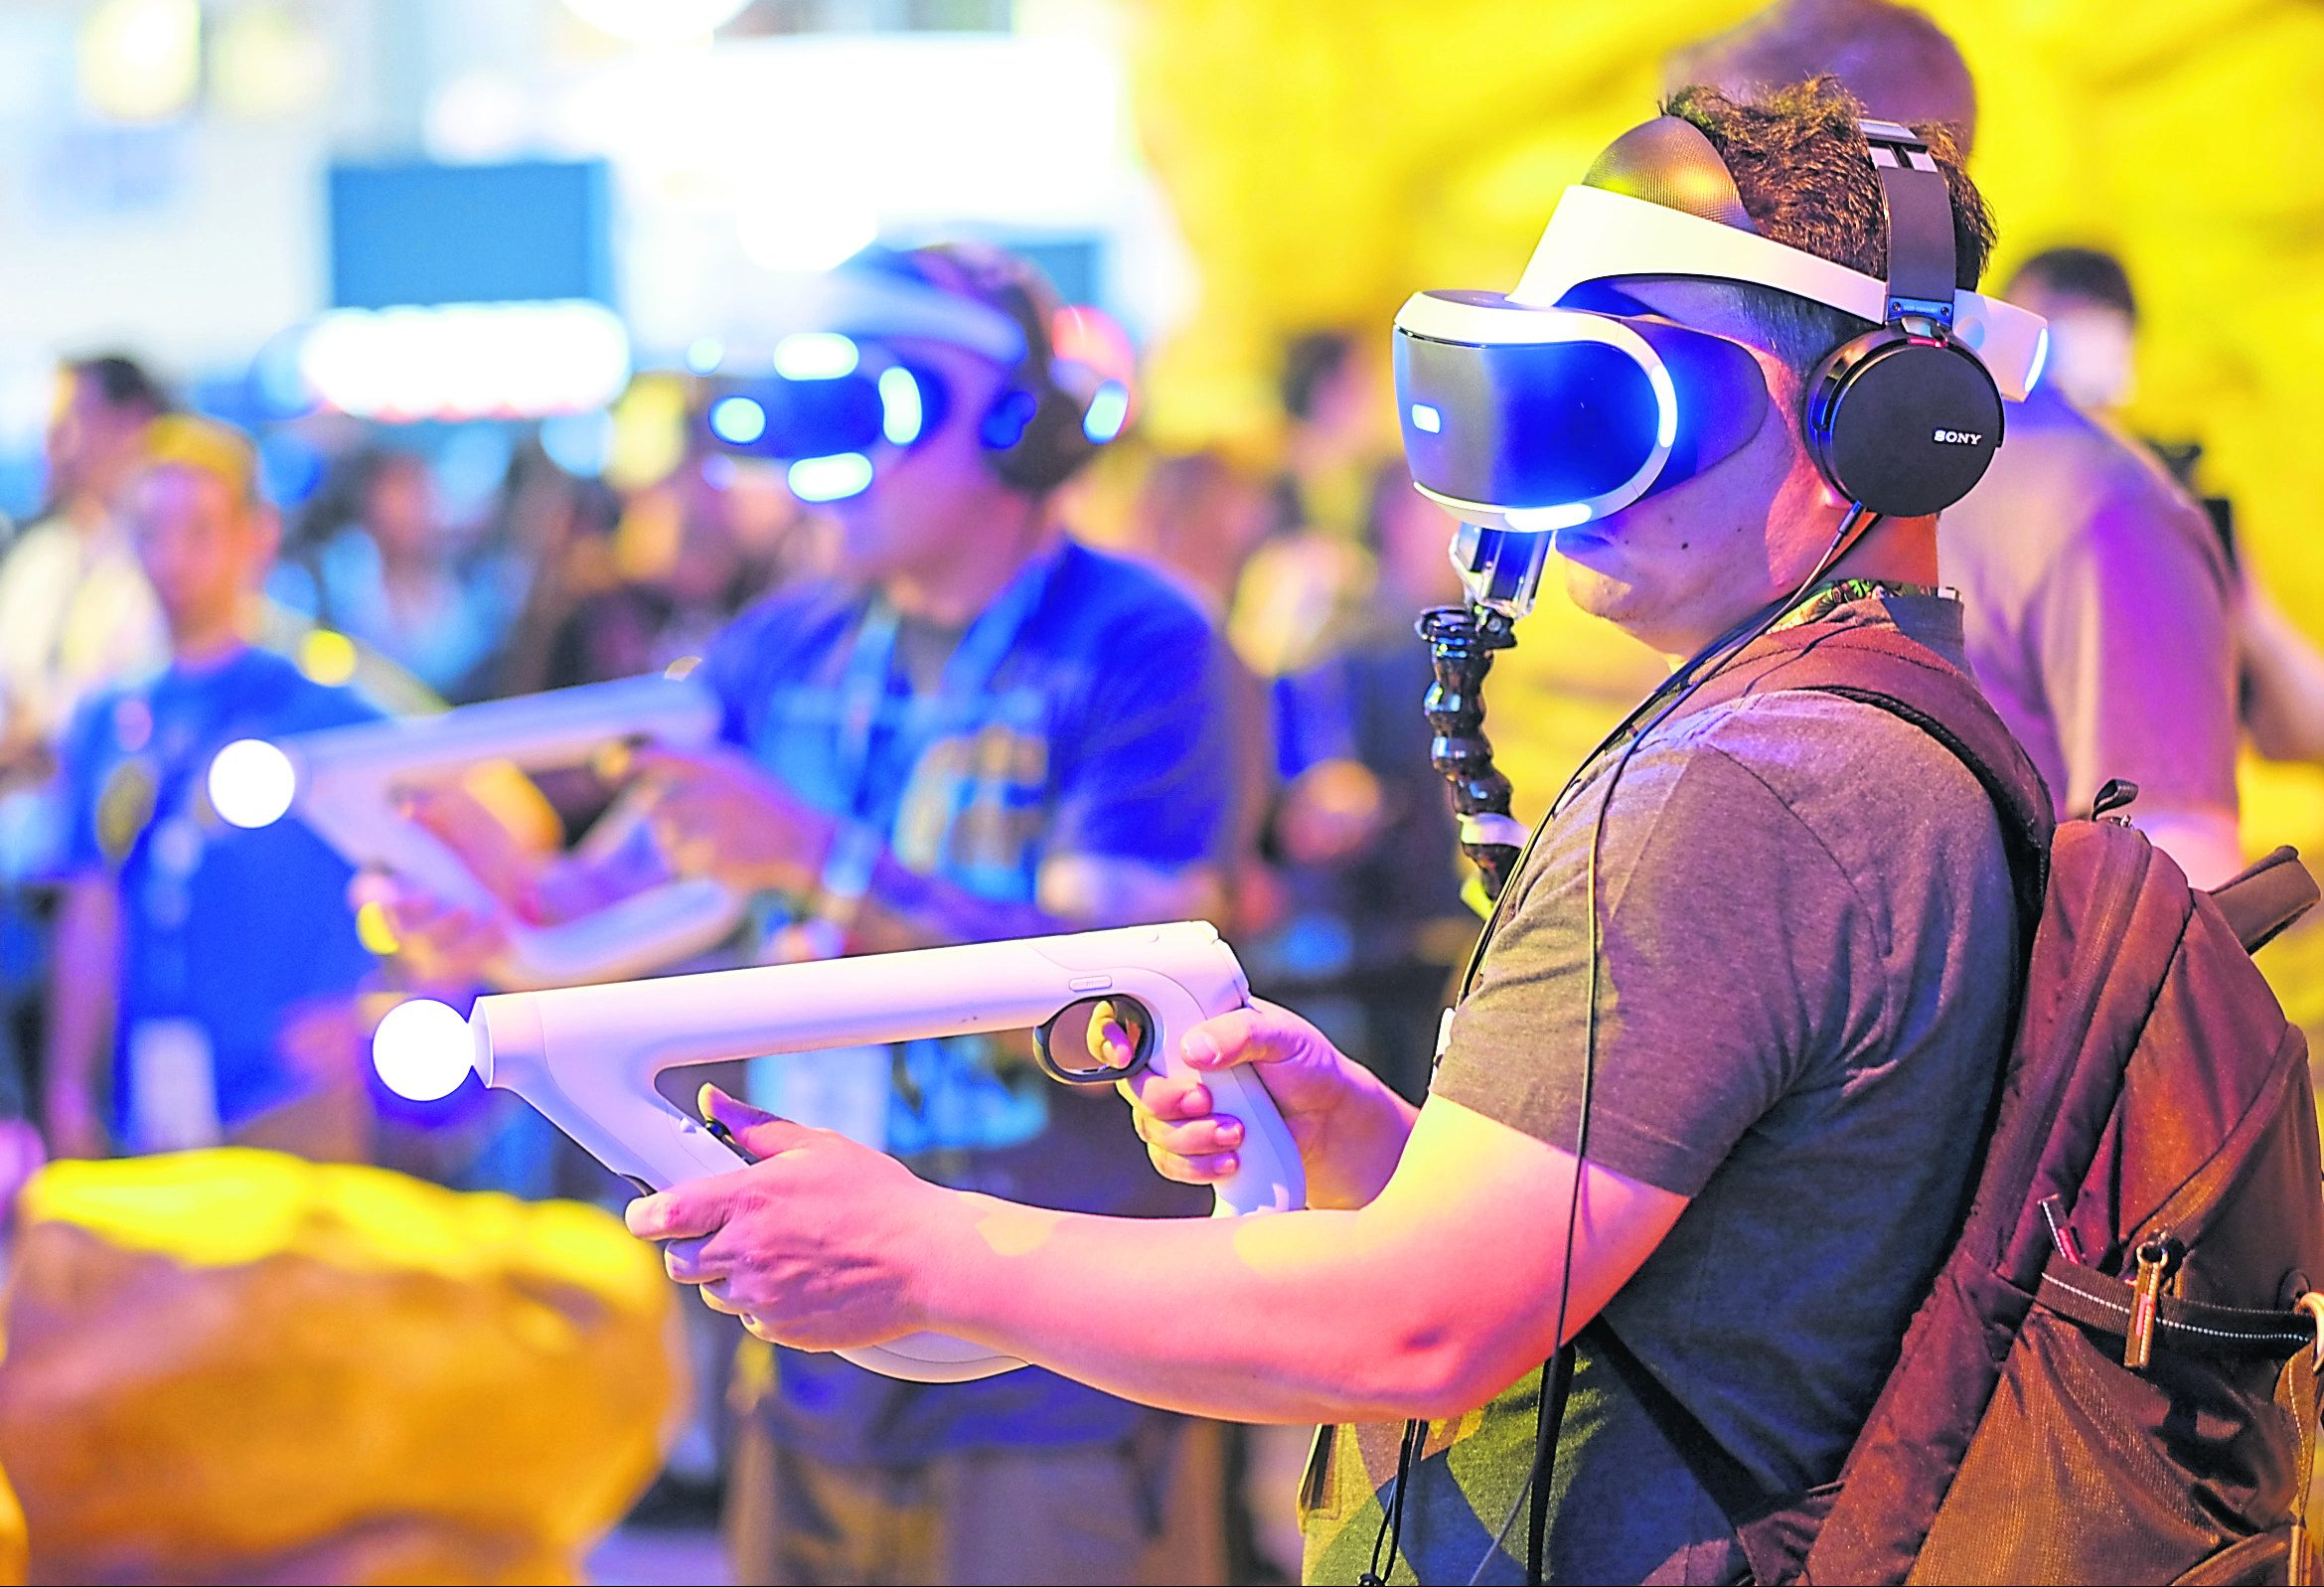 What's happening to the gaming industry?